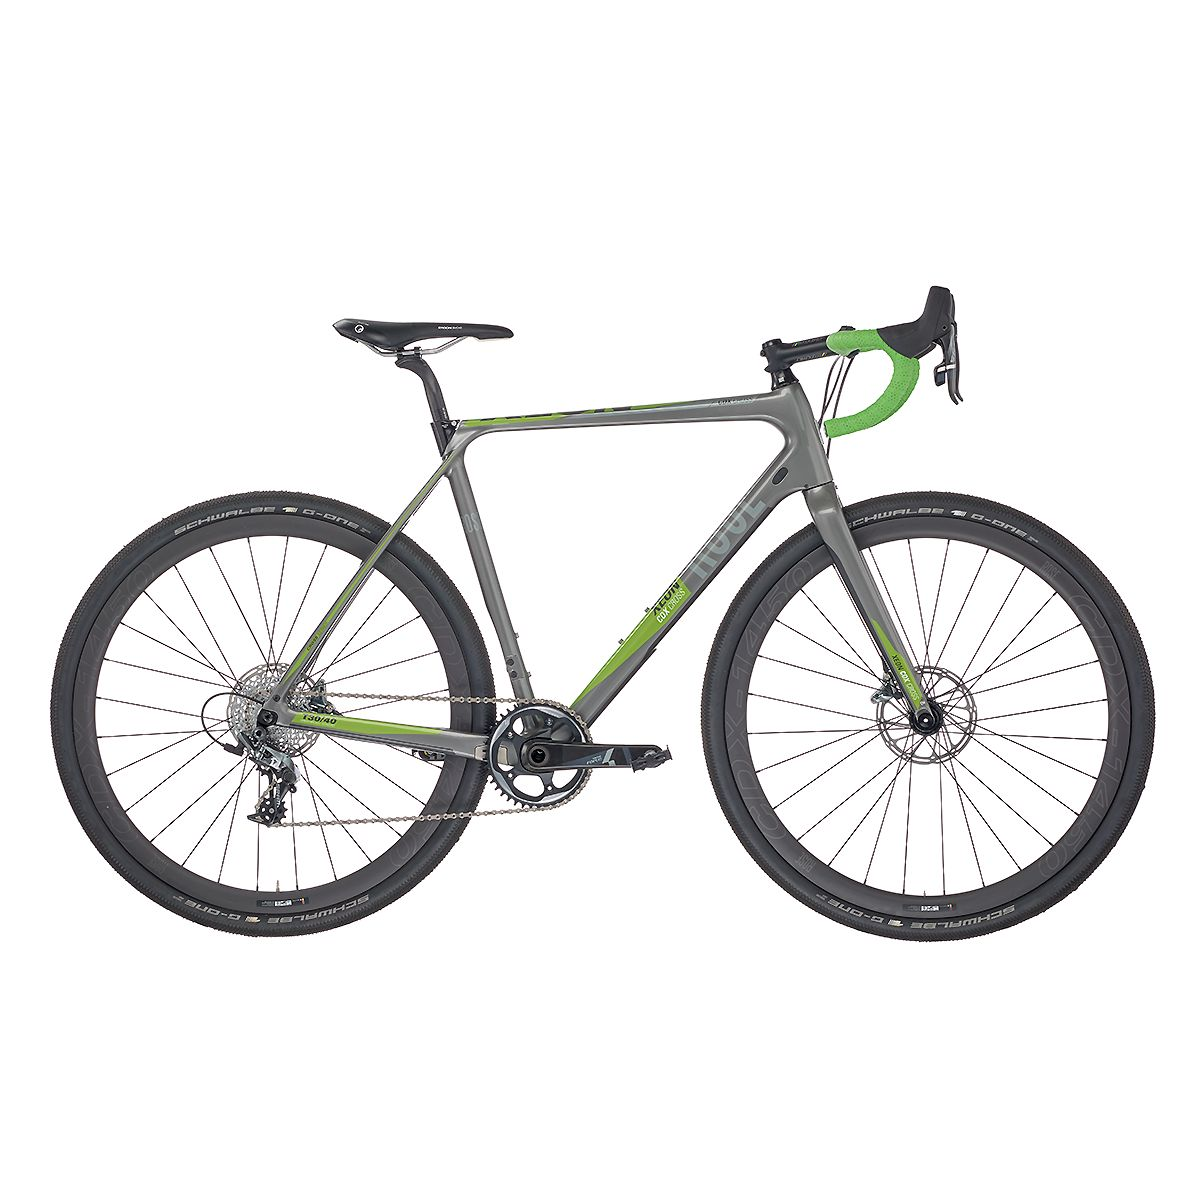 XEON CDX CROSS 4400 showroom bike